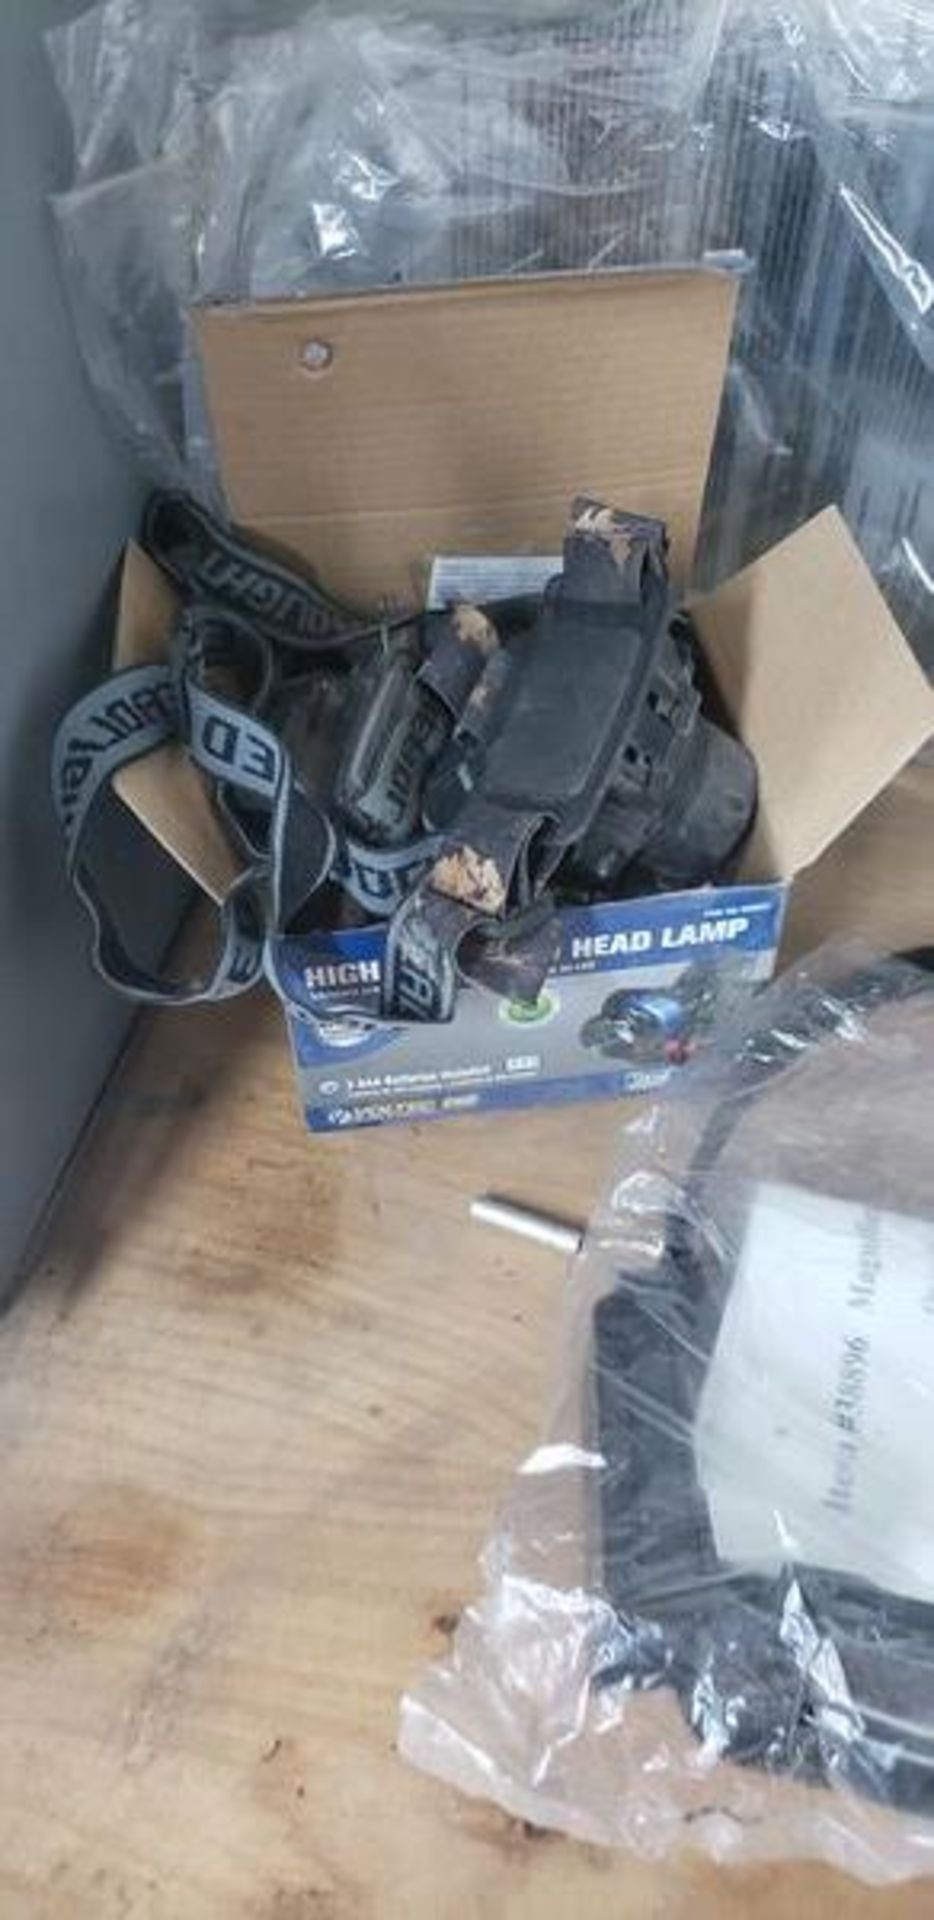 LOT OF HEAD BAND LIGHTS, MAGNIFIER AND FACE SHIELDS - Image 3 of 4